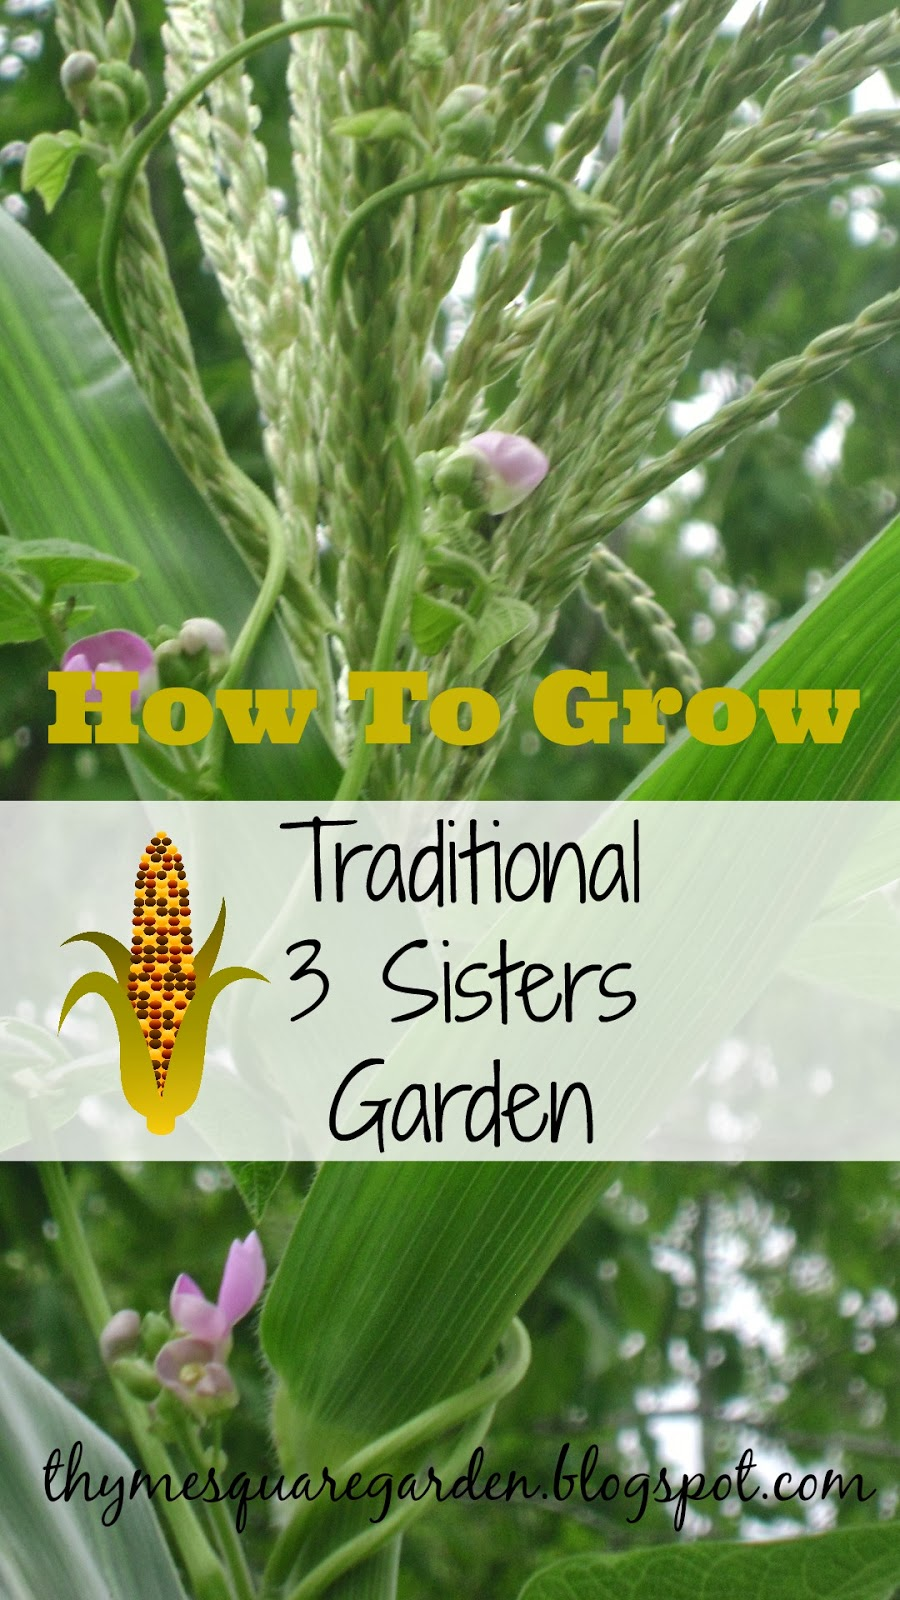 Tsg how to grow traditional 3 sisters garden Sisters garden